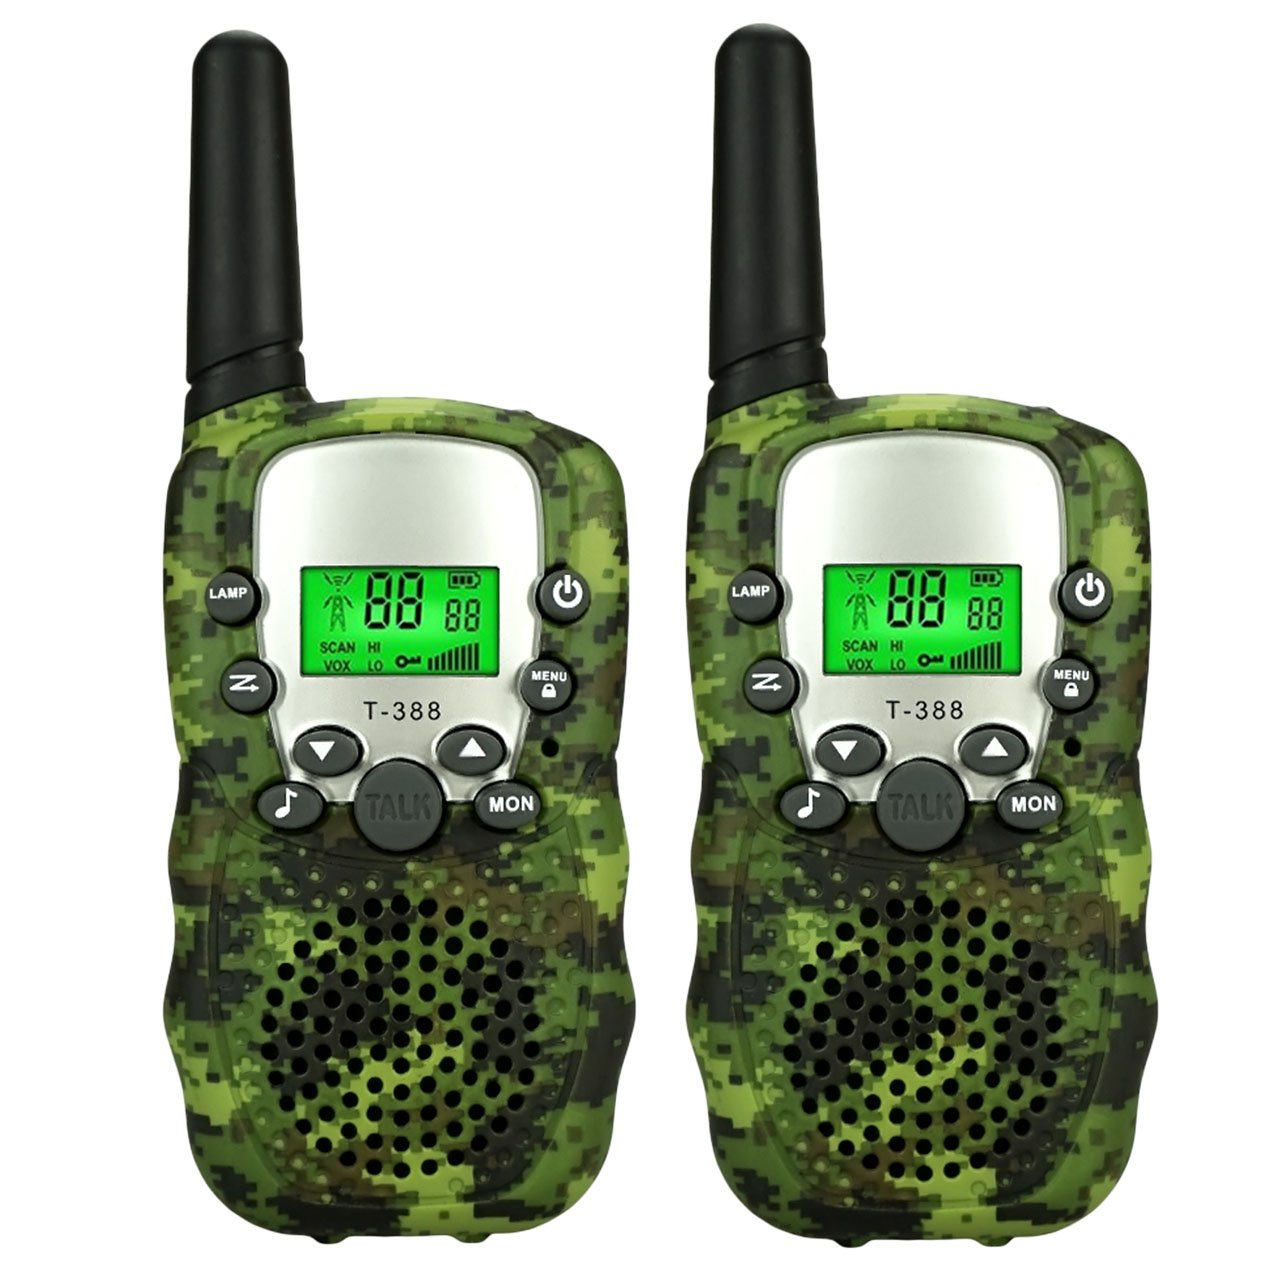 TISY Toys for 3-12 Year Old Boys, Walkie Talkies Boy Gifts Age 3-12 Gifts for 3-12 Year Old Girls Eletronic Sporting Toys for 3-12 Year Old Girls TSUSDJ01